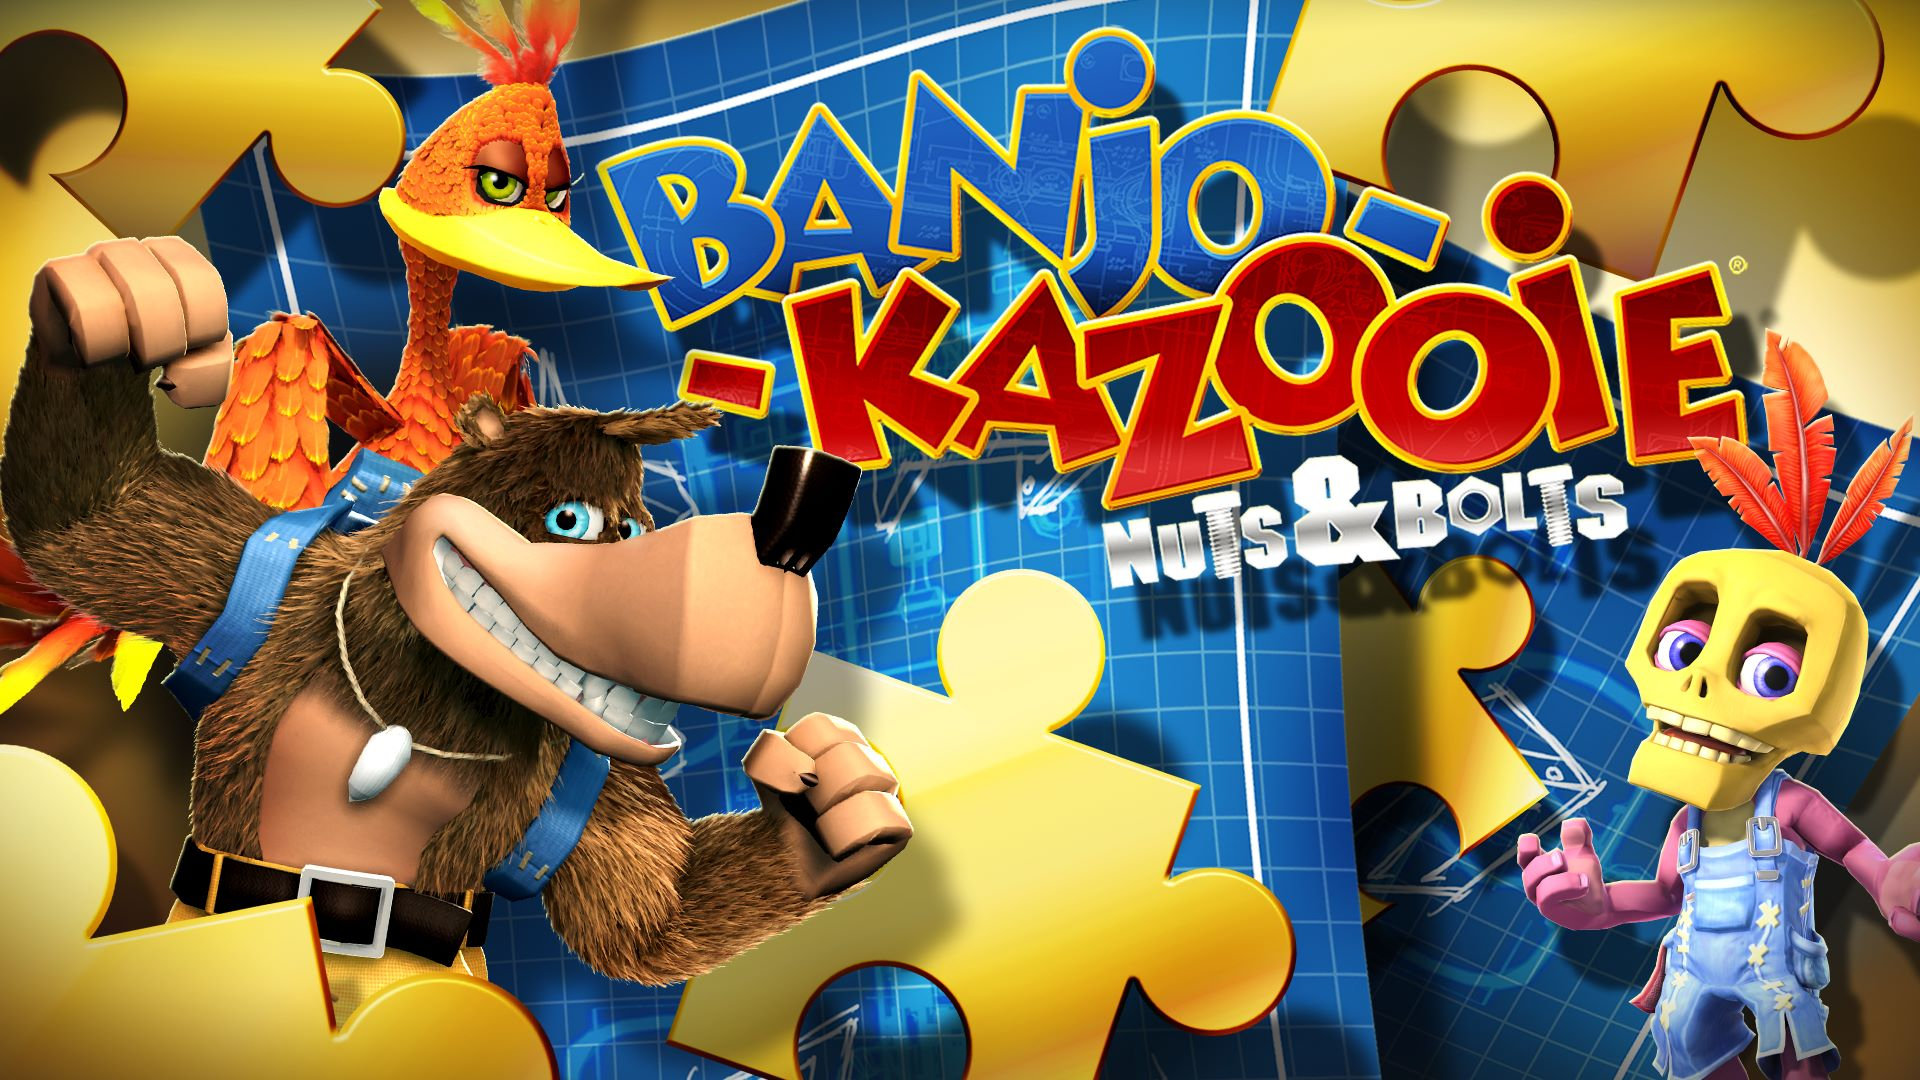 banjo kazooie - photo #3